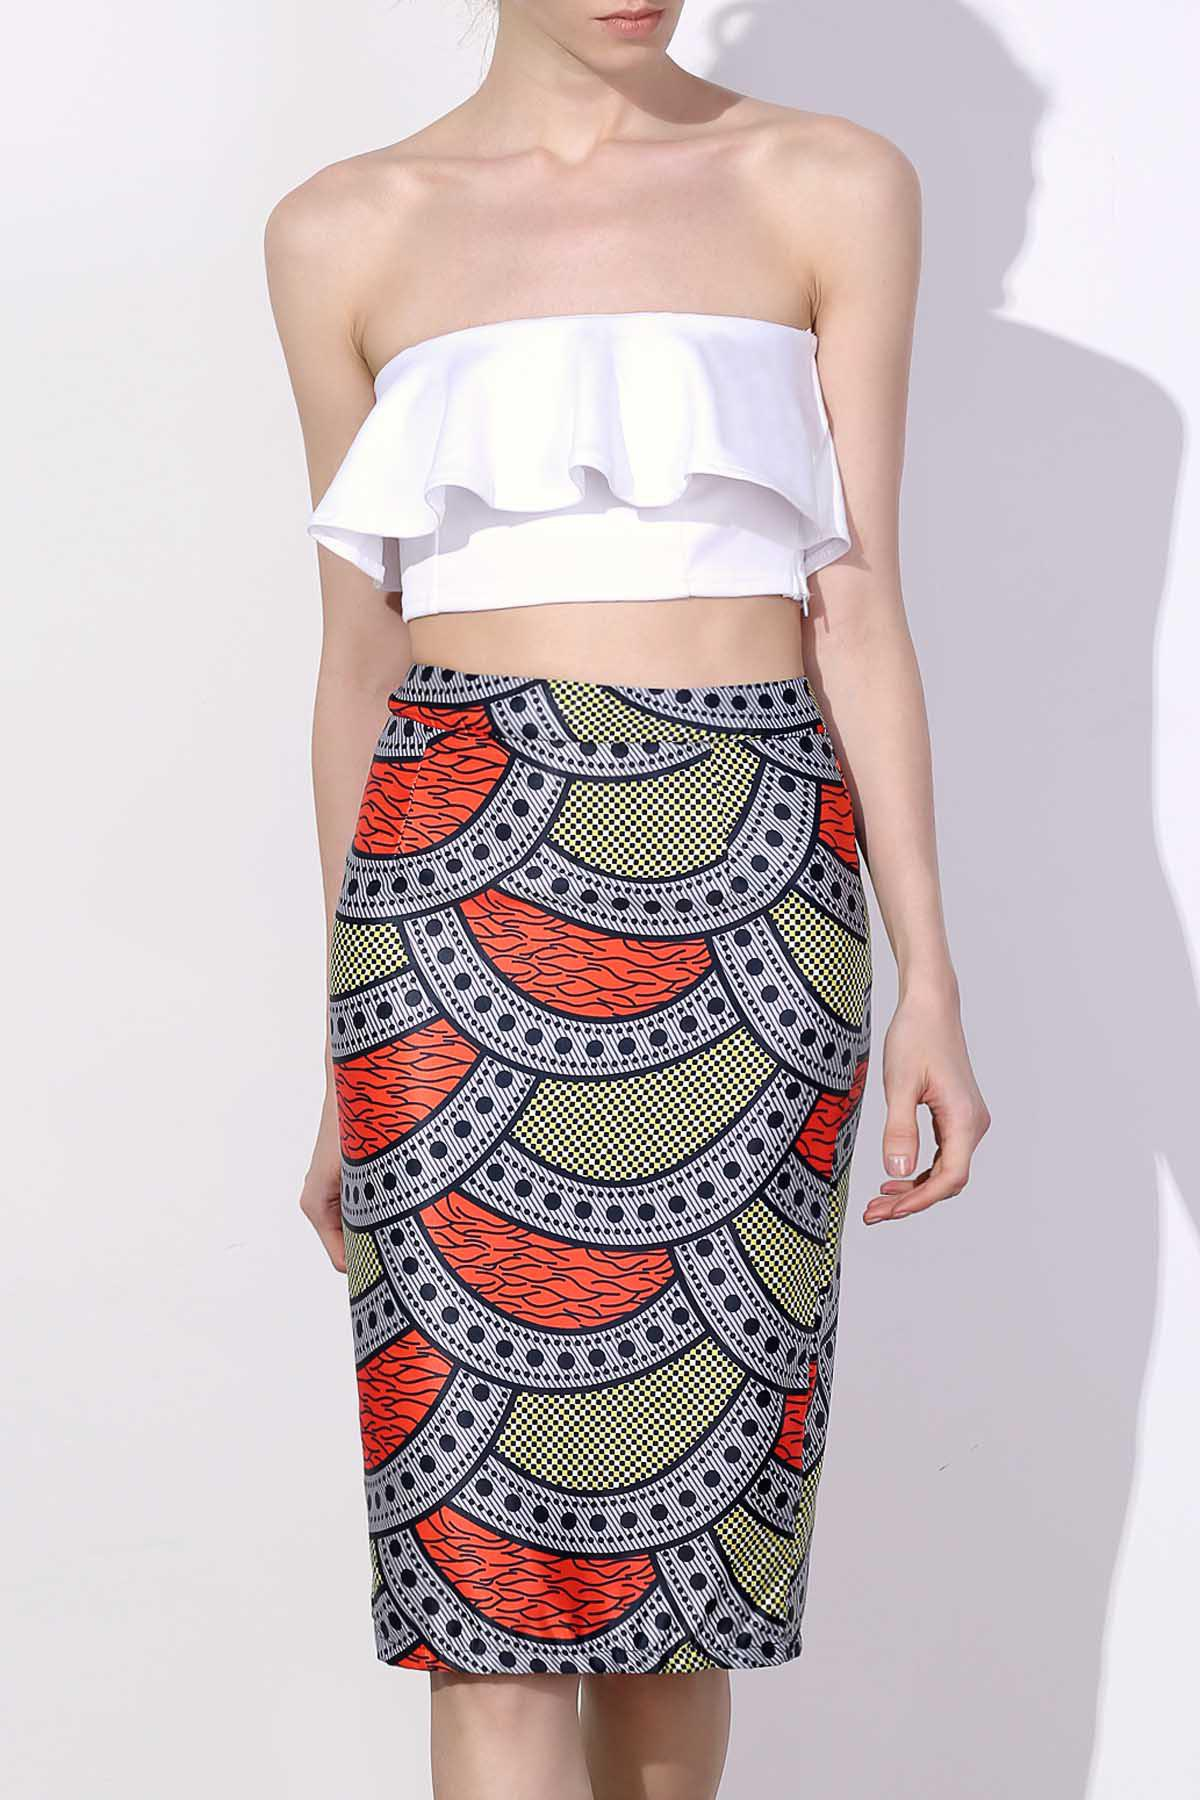 Stylish High-Waisted Bodycon Printed Women's Skirt - S COLORMIX